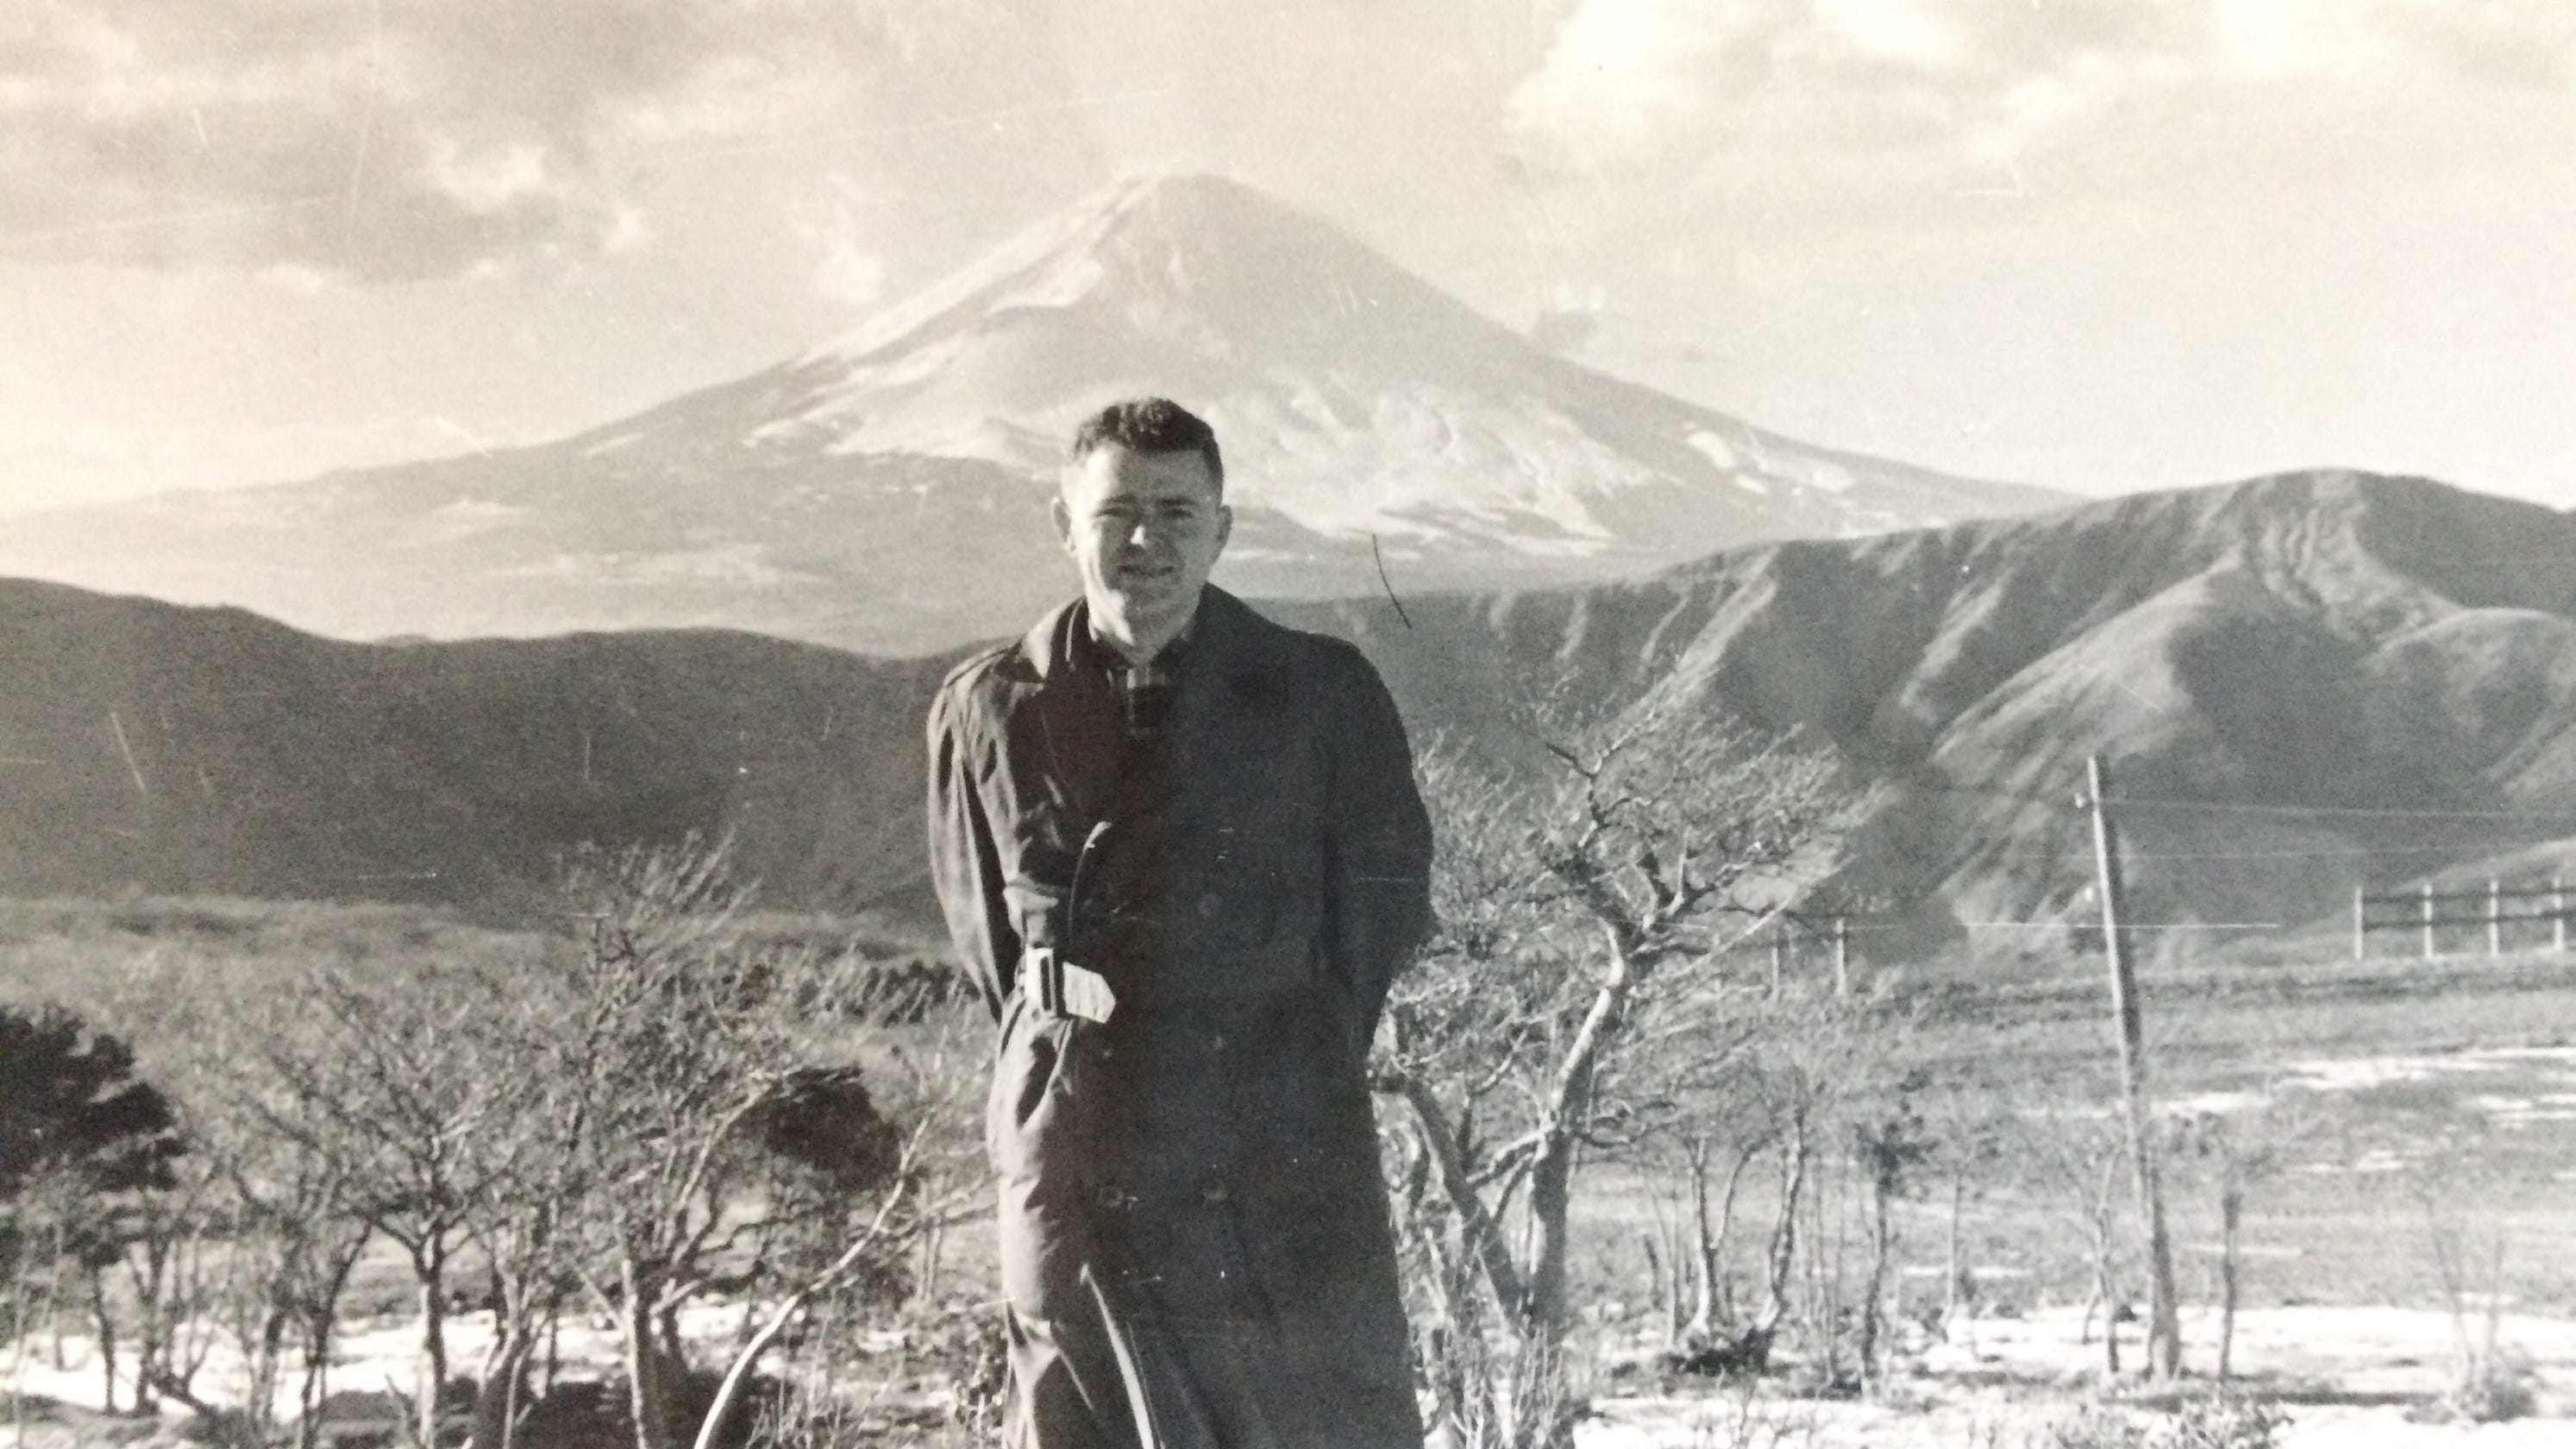 As a WWII vet battles dementia, his family's research uncovers lost stories from his life